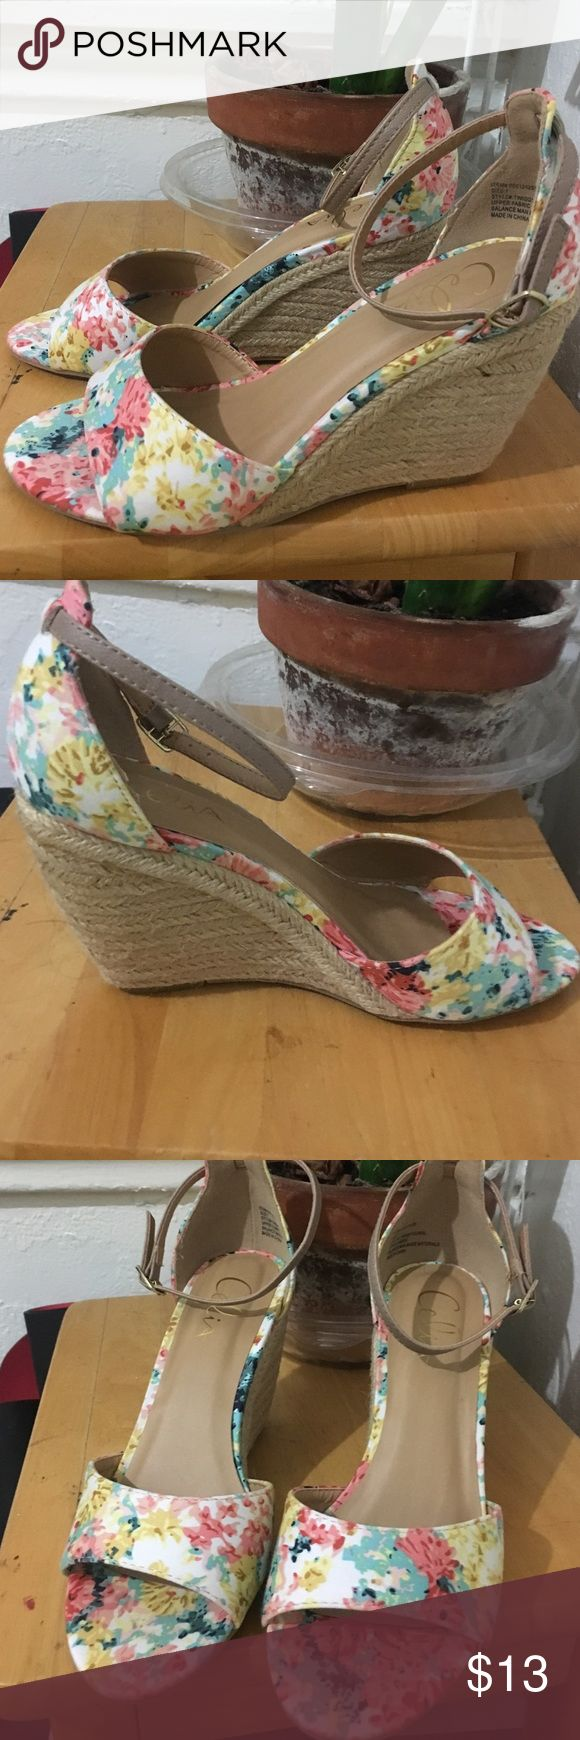 Floral peep toe wedges 🌺🌸 Gorgeous floral wedges !!! Brand new ! Never worn ! With original box! celia Shoes Wedges